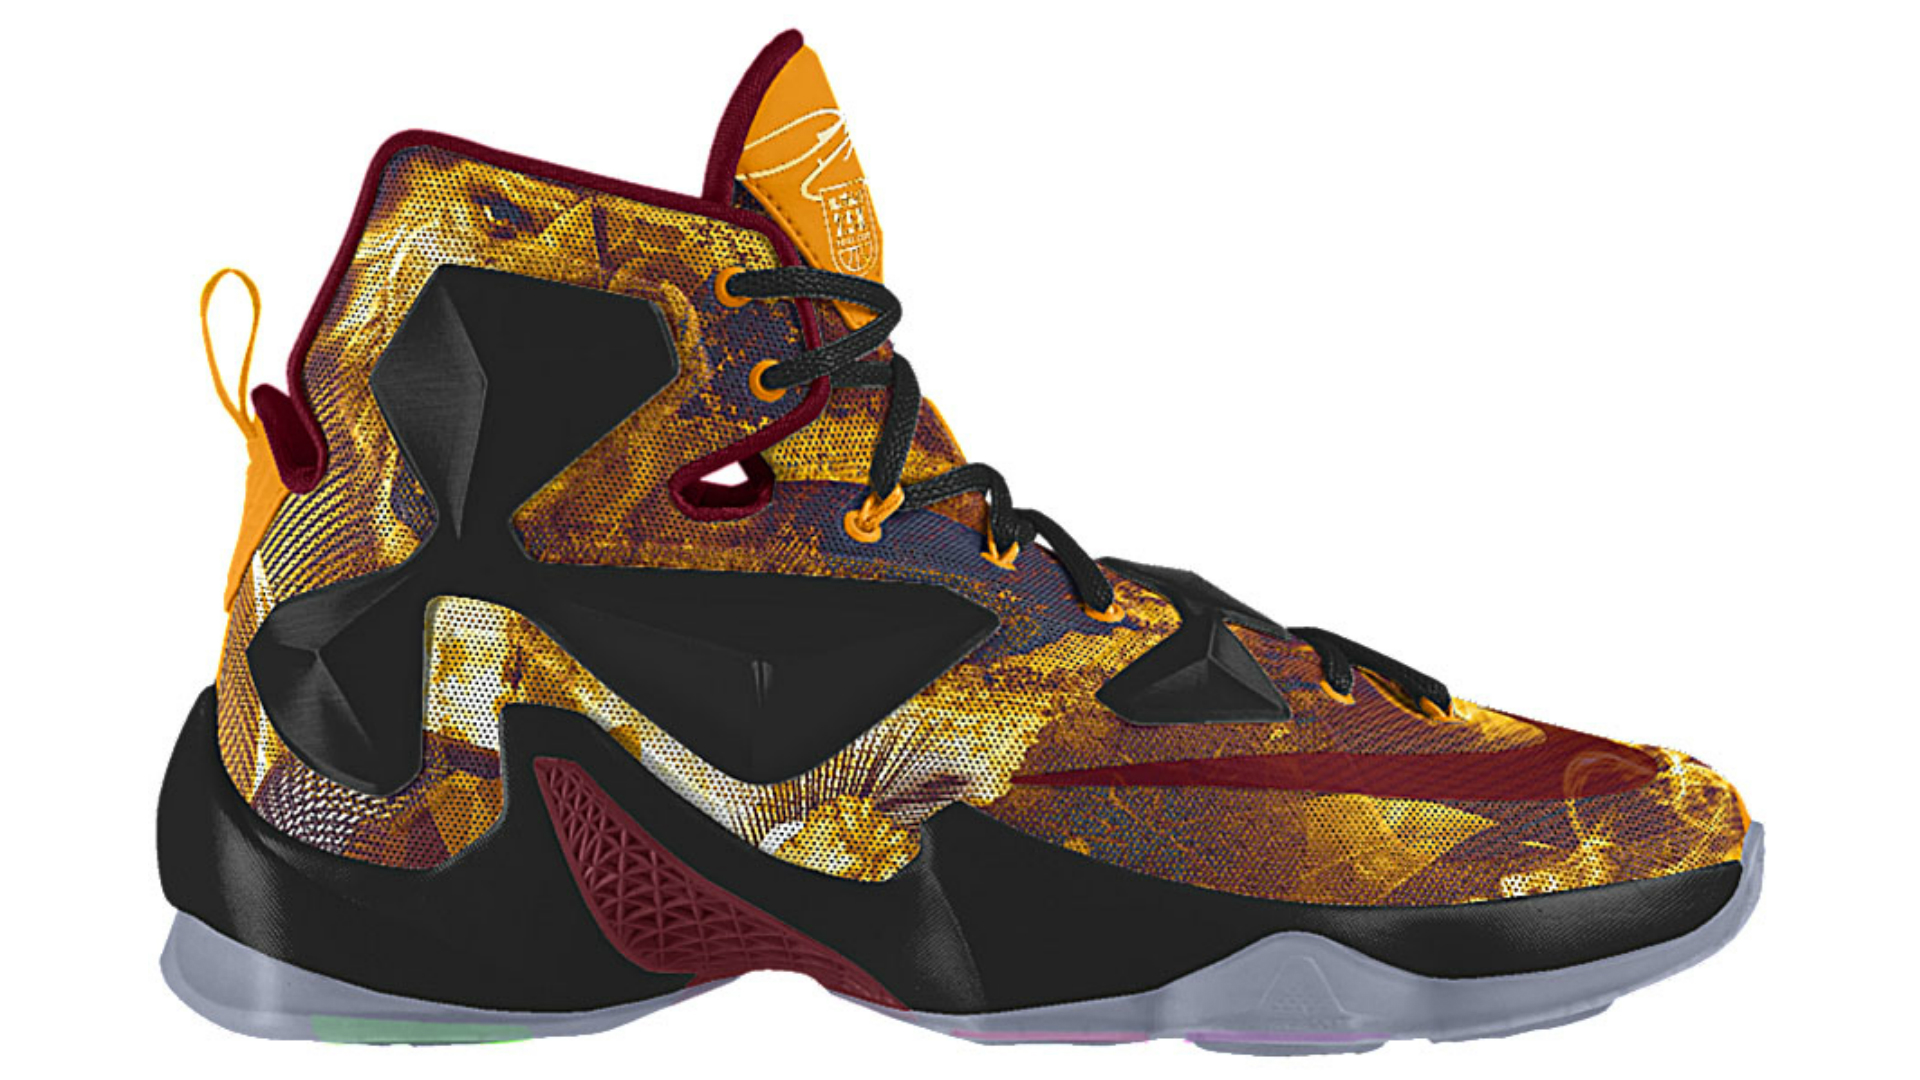 8c717264894ec LeBron James gets a limited-edition shoe for his 25